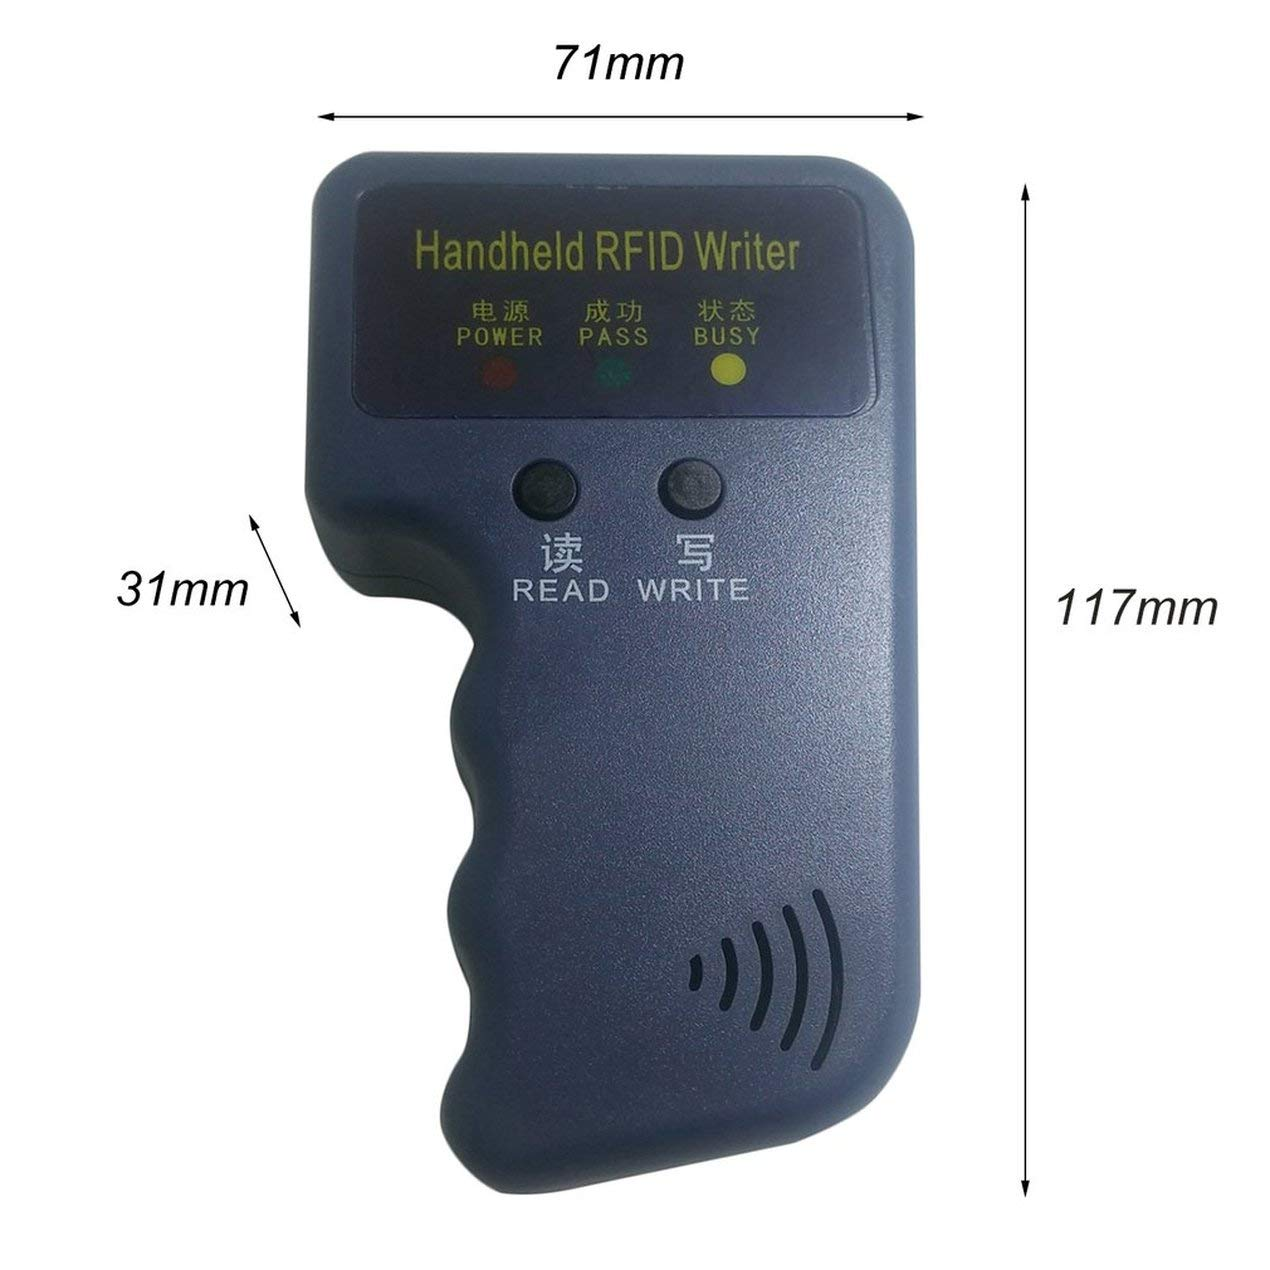 Access control card reader,Handheld 125Khz EM4100 RFID Copier Writer Duplicator Programmer Reader Compatible With EM4305 T5577 CET5200 EN4305